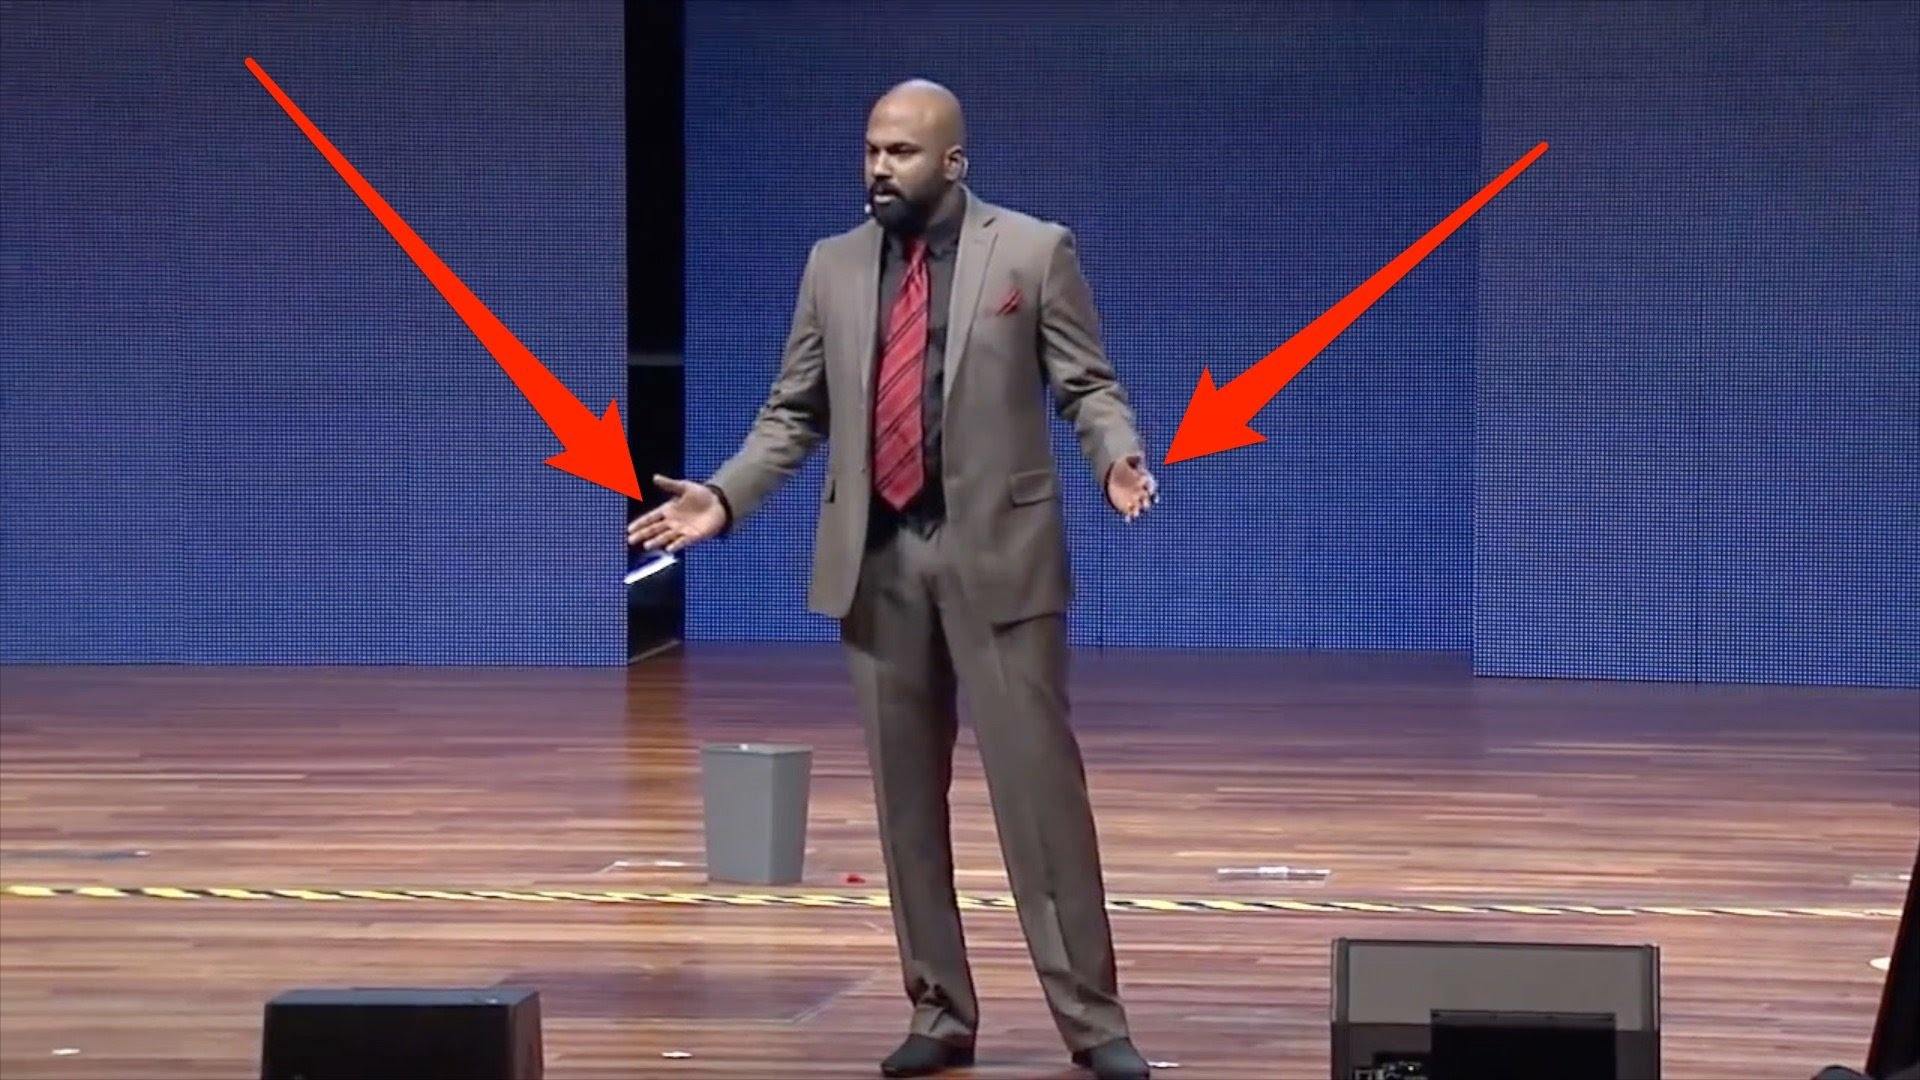 4 essential body language tips from a world champion public speaker